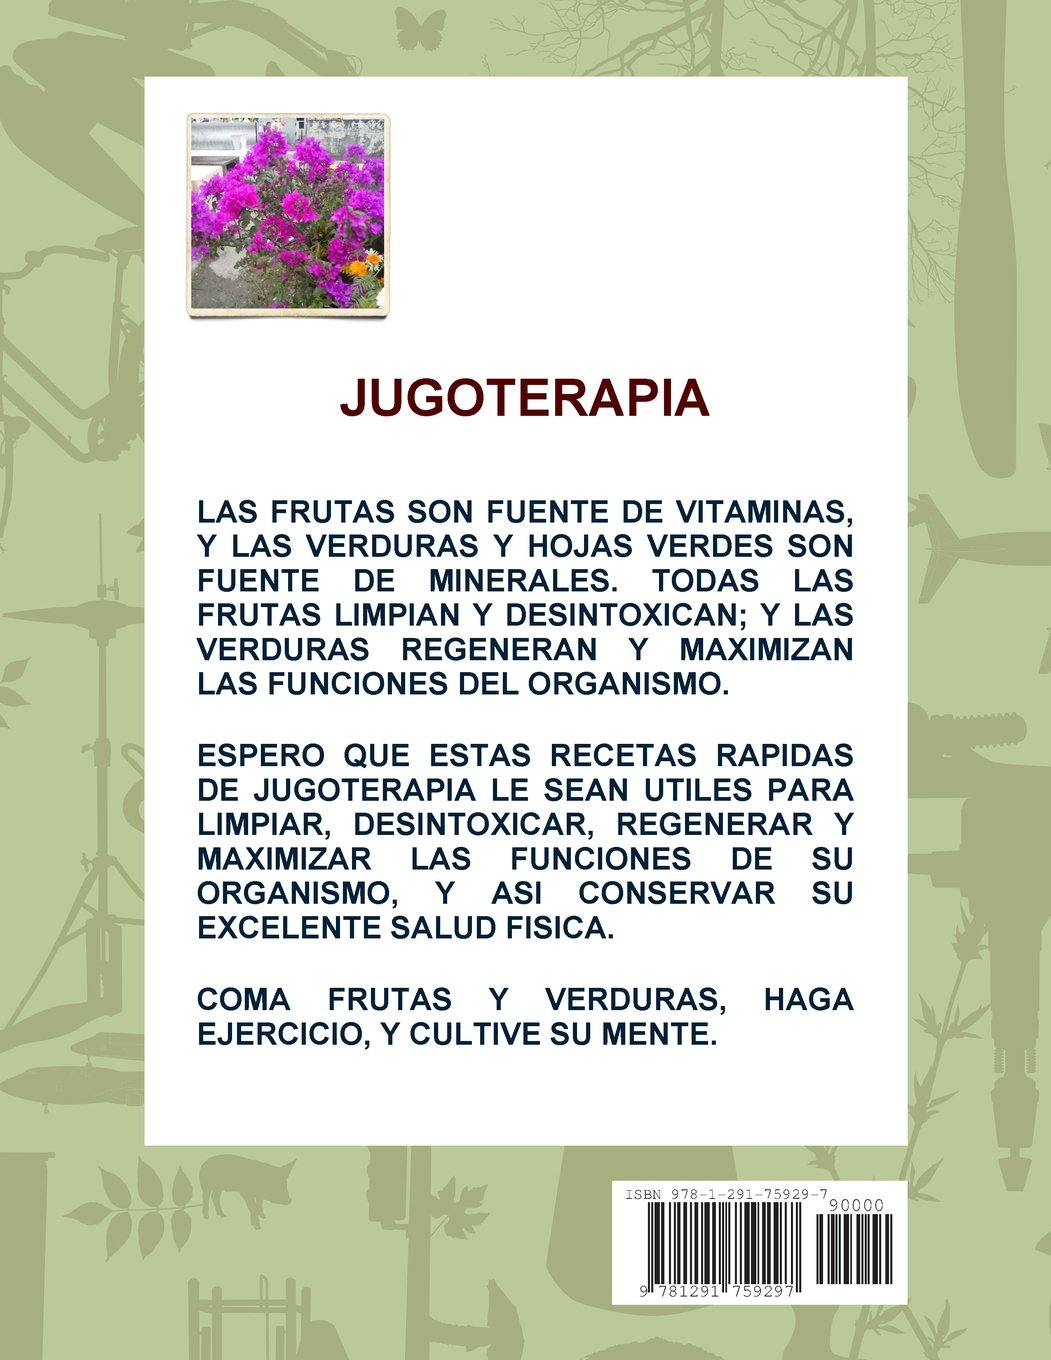 Jugoterapia (Spanish Edition): Omar Ali Caldela: 9781291759297: Amazon.com: Books